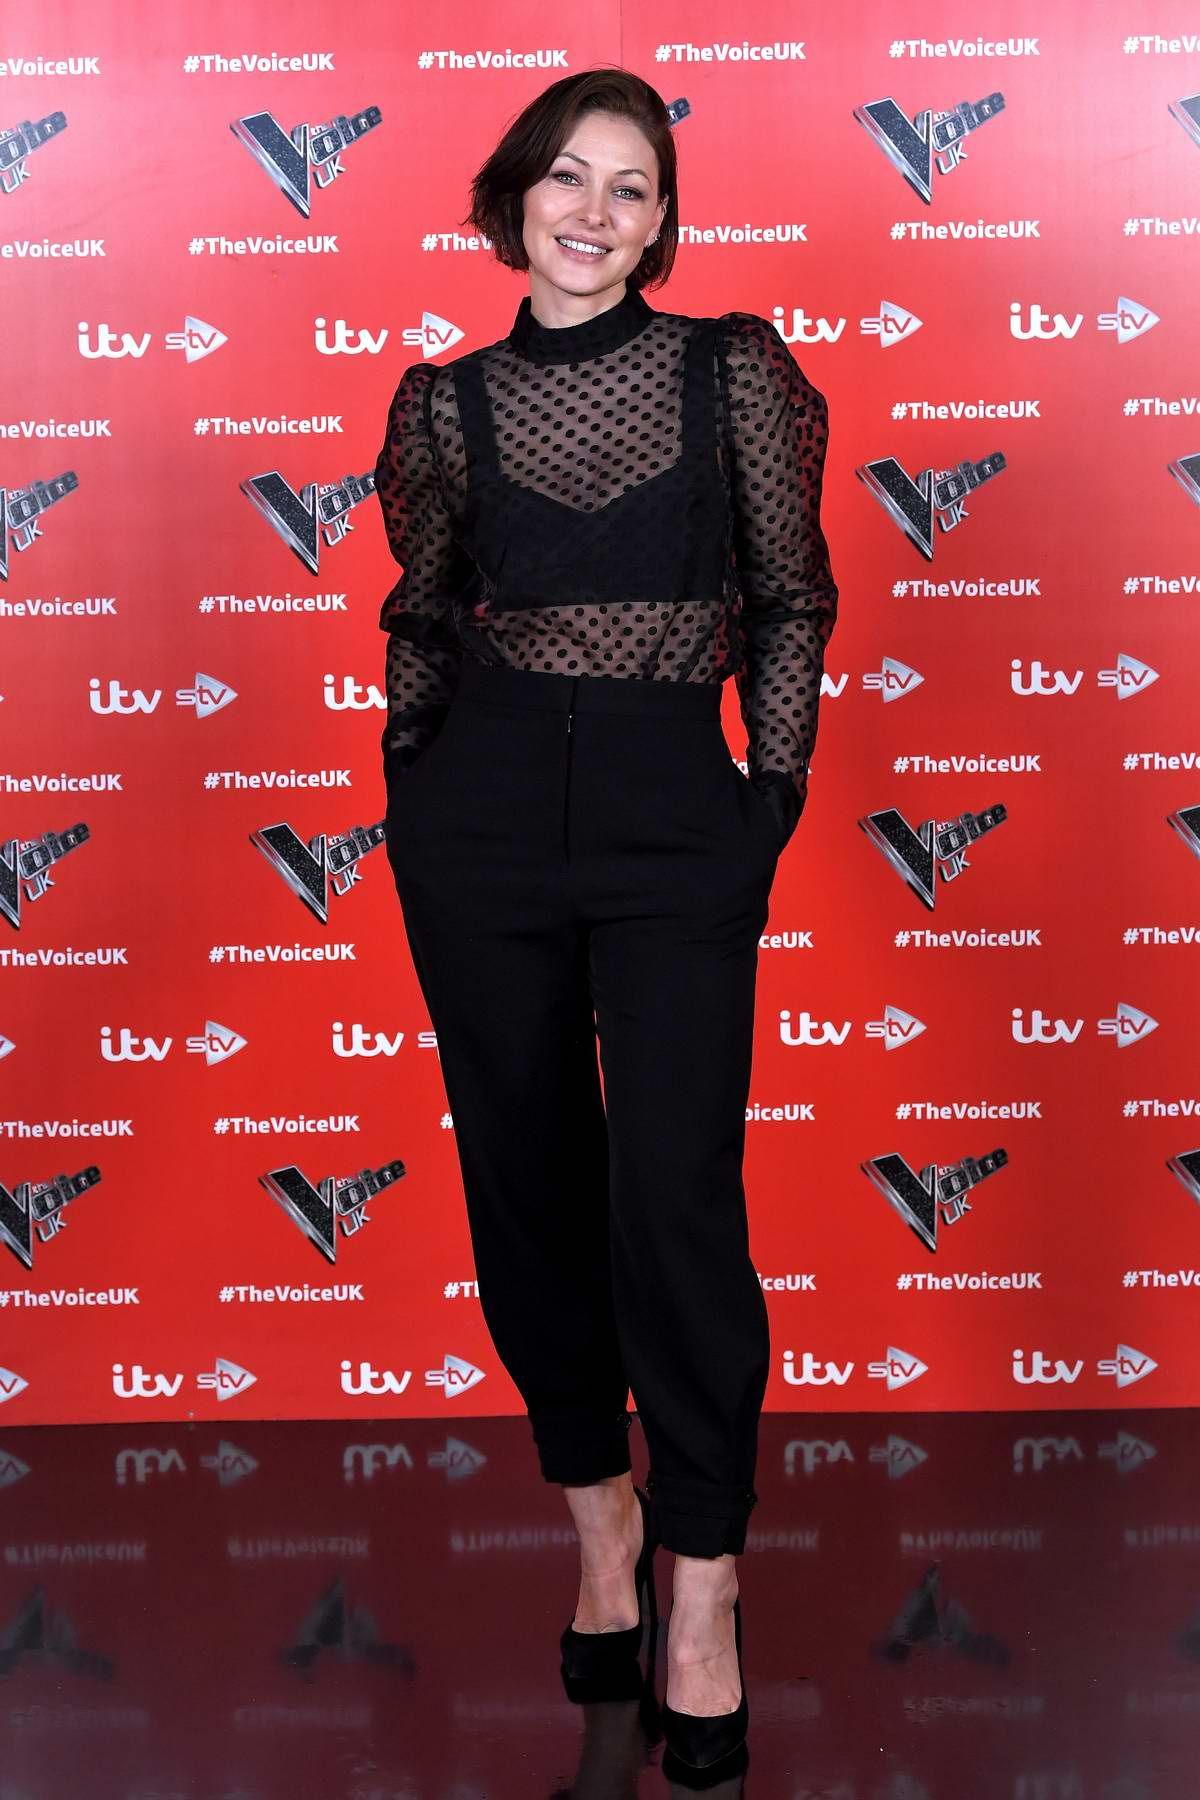 Emma Willis attends 'The Voice UK' Series 4 Photocall in Manchester, UK